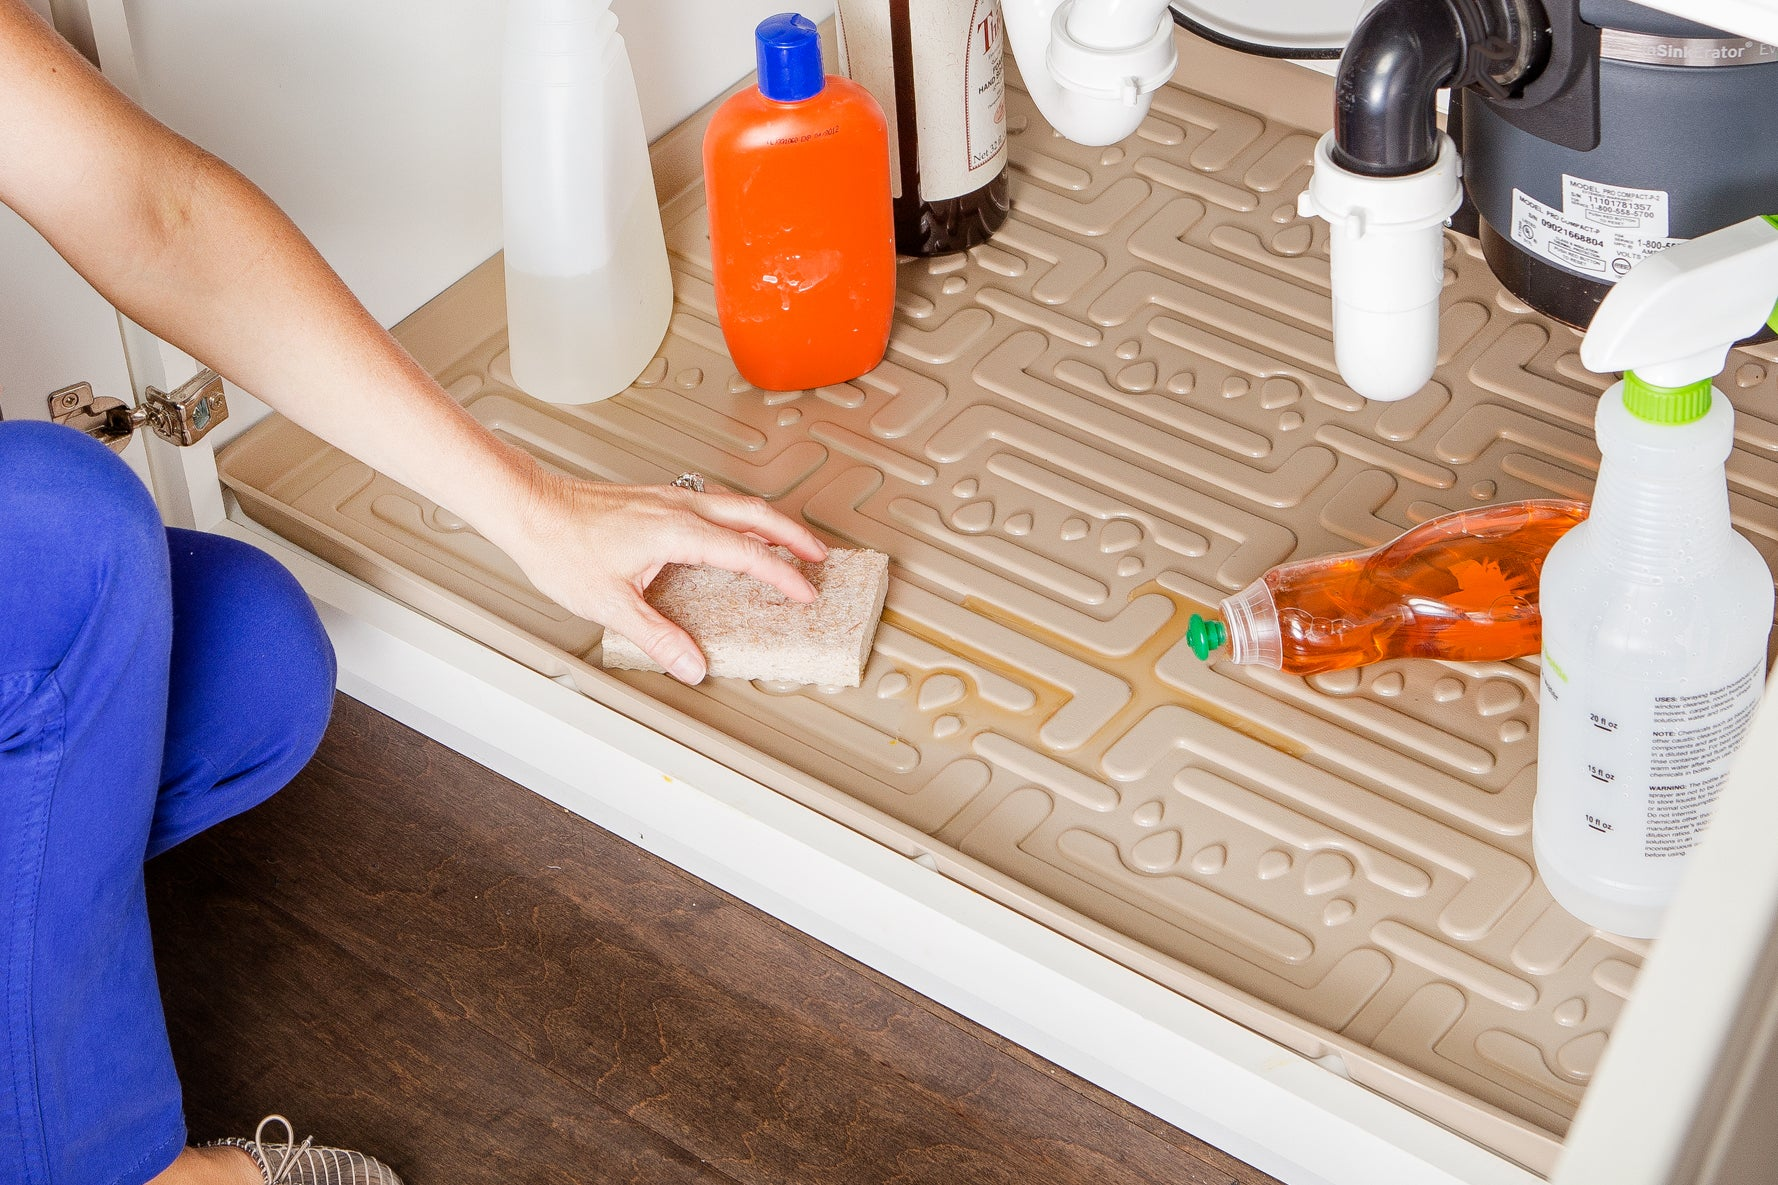 beige mat in a cabinet with bottles